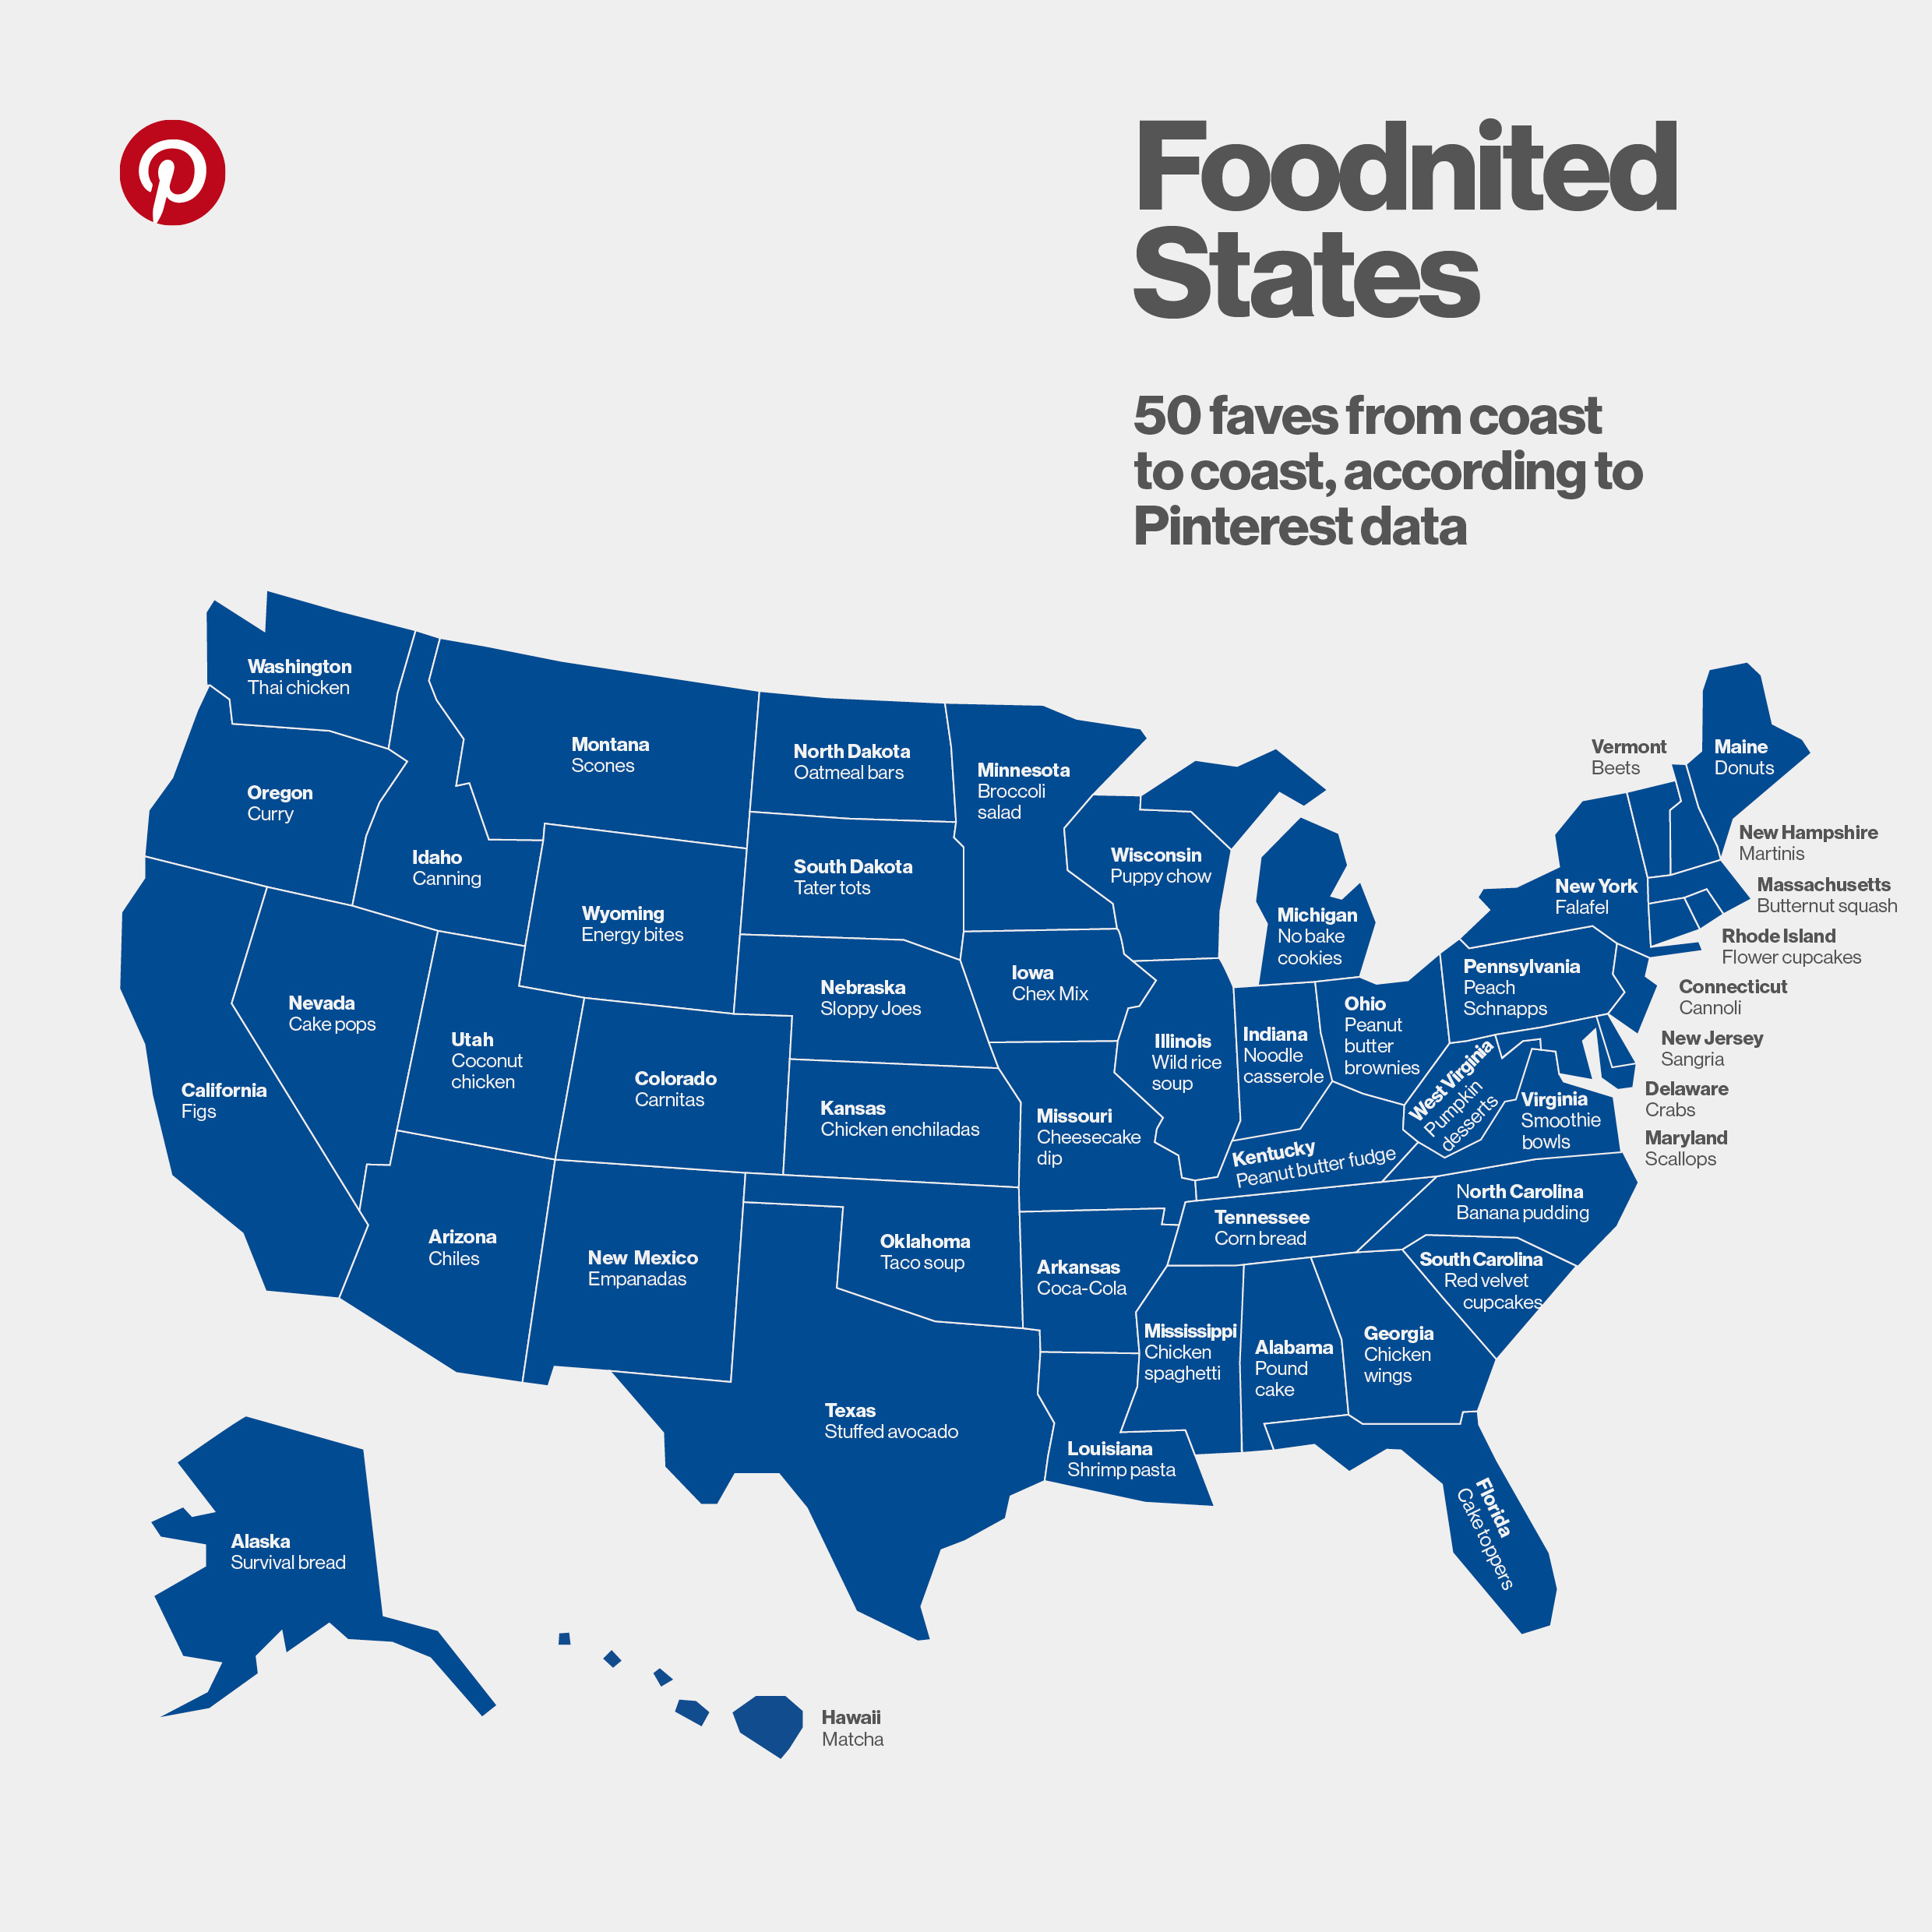 The Most Popular Food Ideas (by Region) on Pinterest [Infographic] | Social Media Today